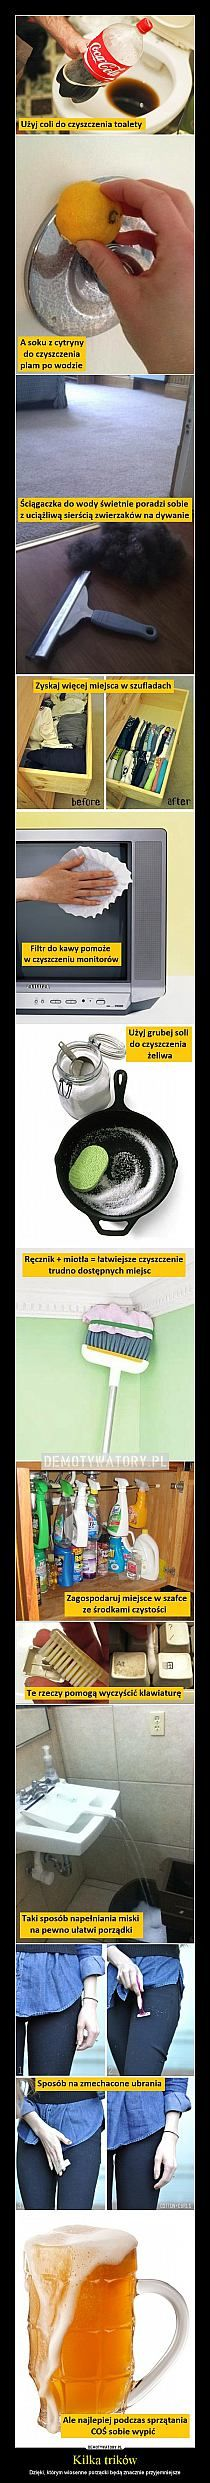 Have no idea what it says but I get it. Diy And Crafts, Arts And Crafts, Housekeeping Tips, Simple Life Hacks, Outdoor Life, Things To Know, Clean House, Beach Club, Cleaning